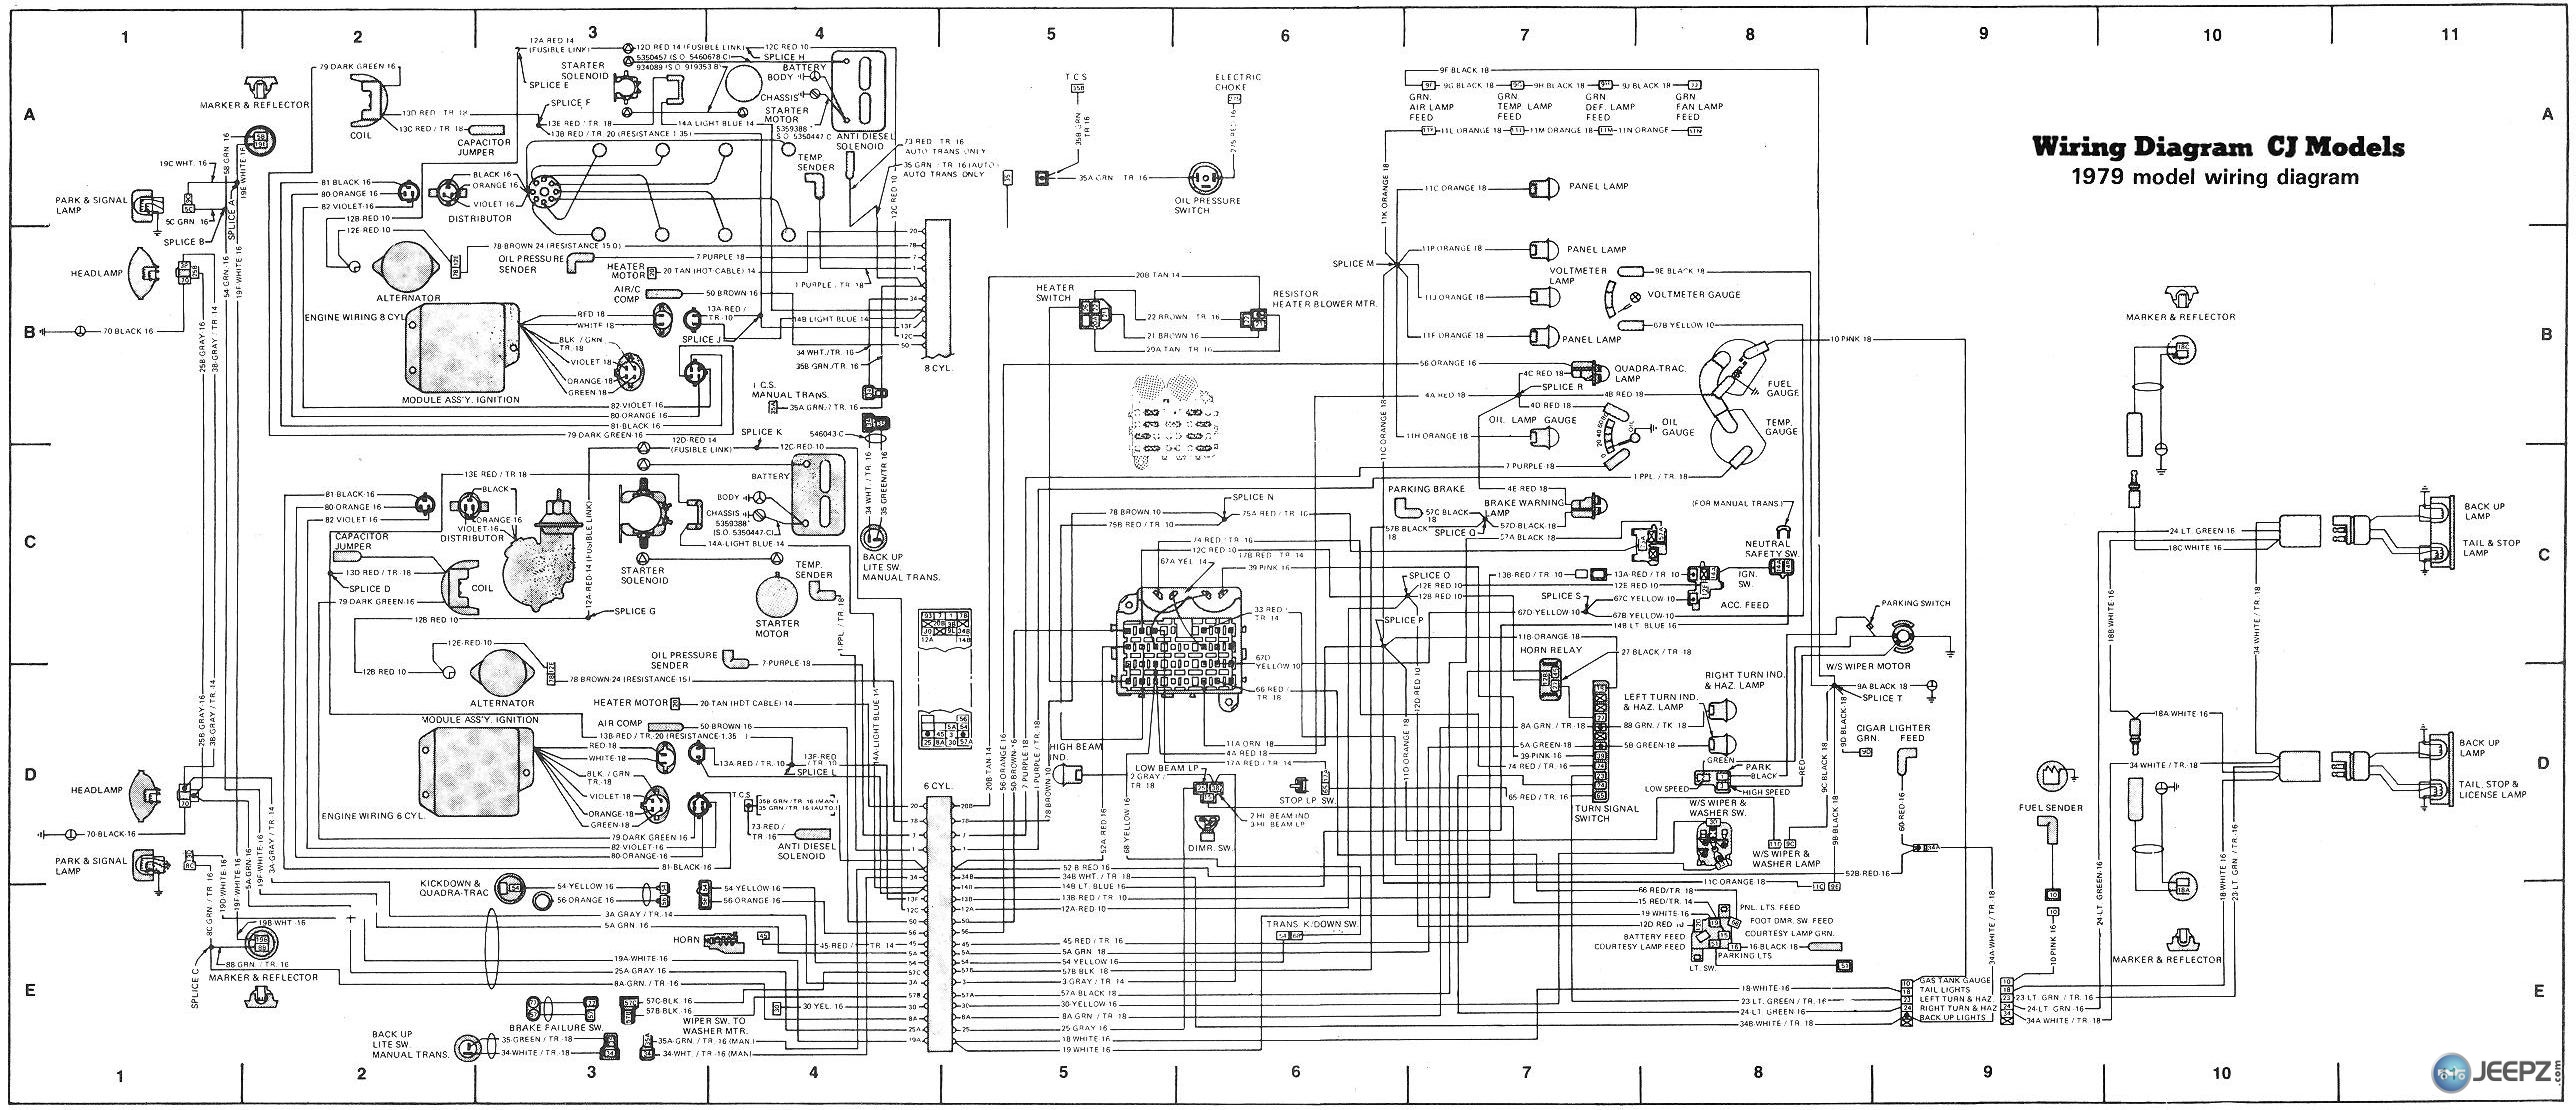 Cj7 Wiring Color Code Explore Schematic Wiring Diagram \u2022 1994 Ford  Explorer Speaker Wire Color 1983 Ford Wiring Color Codes